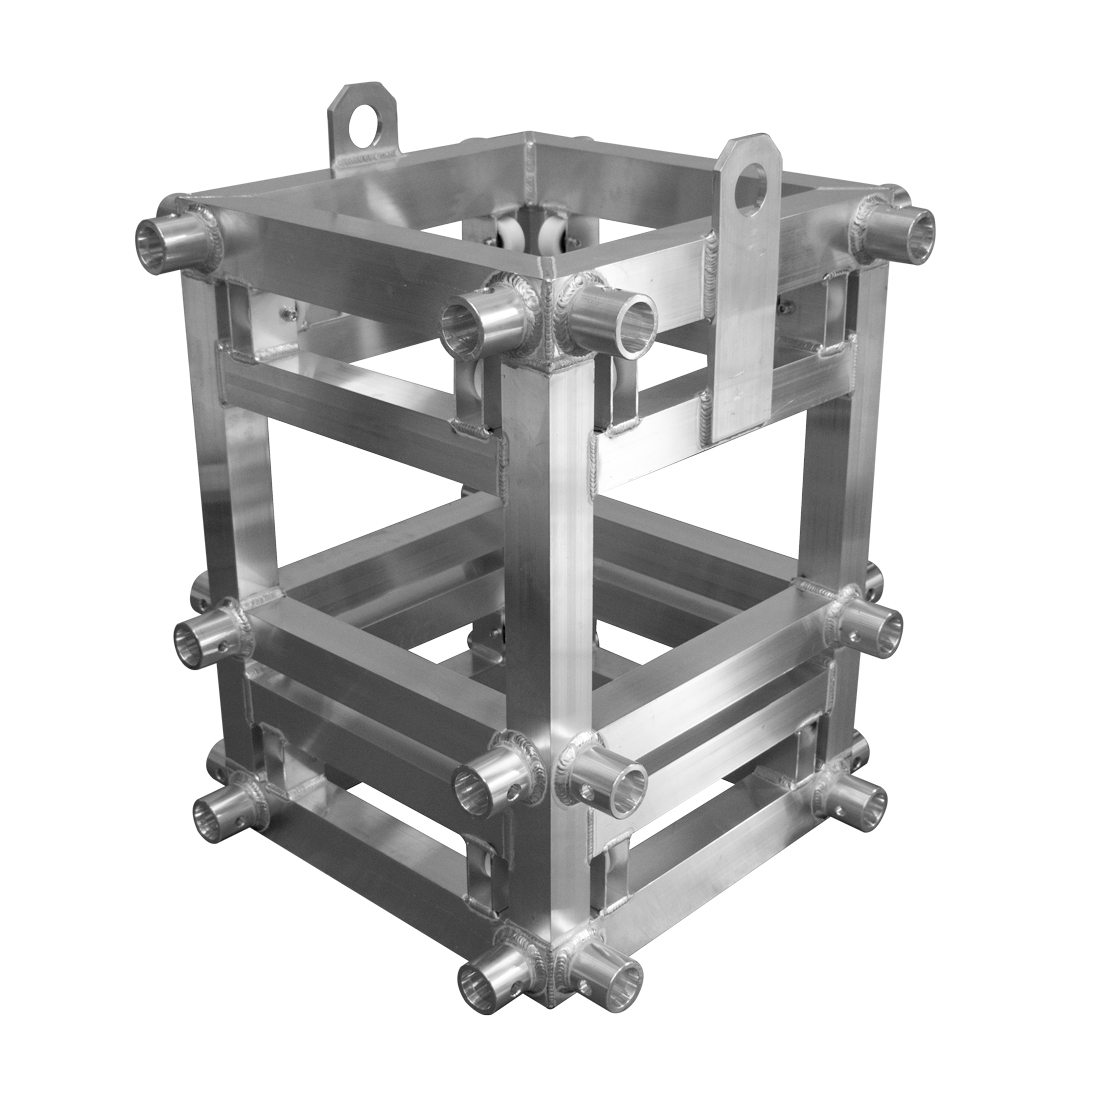 DT 54/74 Sleeve block for tower 2